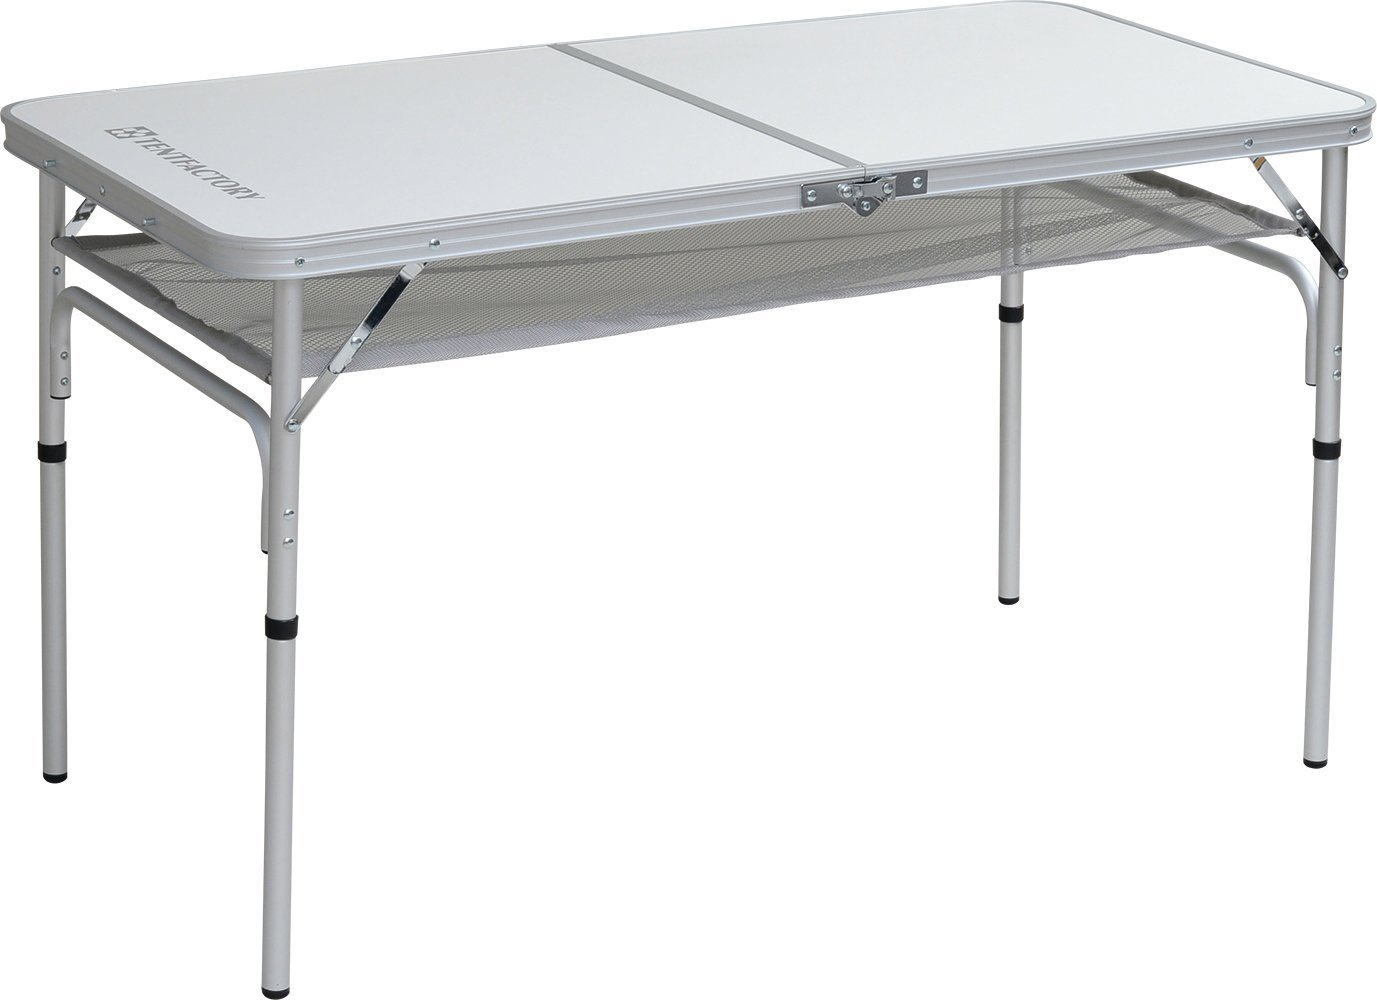 TENT FACTORY (tent factory) dual folding table 1260EX white 120 ~ 60 ~ 68 (35) cm TF-DFT1260EX-WH